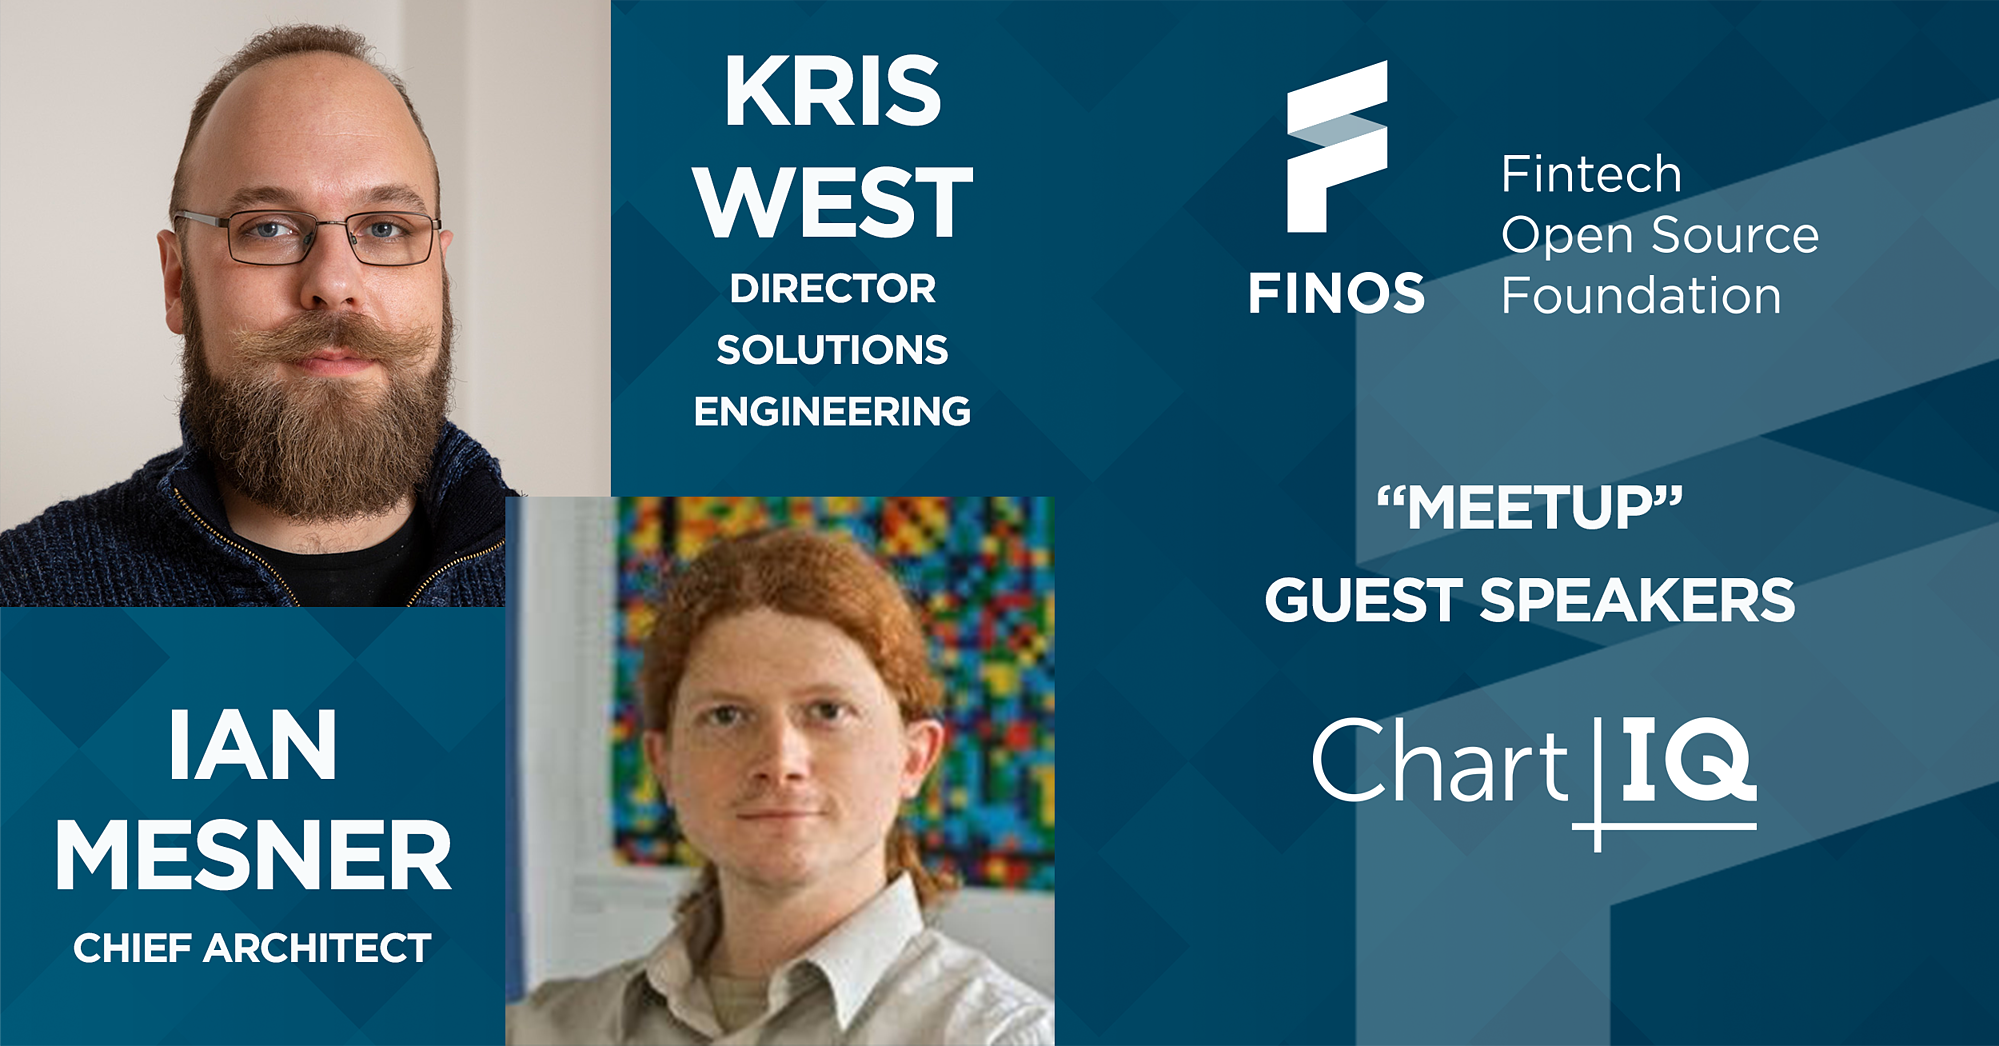 FINOS-meetup-guest-speakers-kris-west-ian-mesner-social